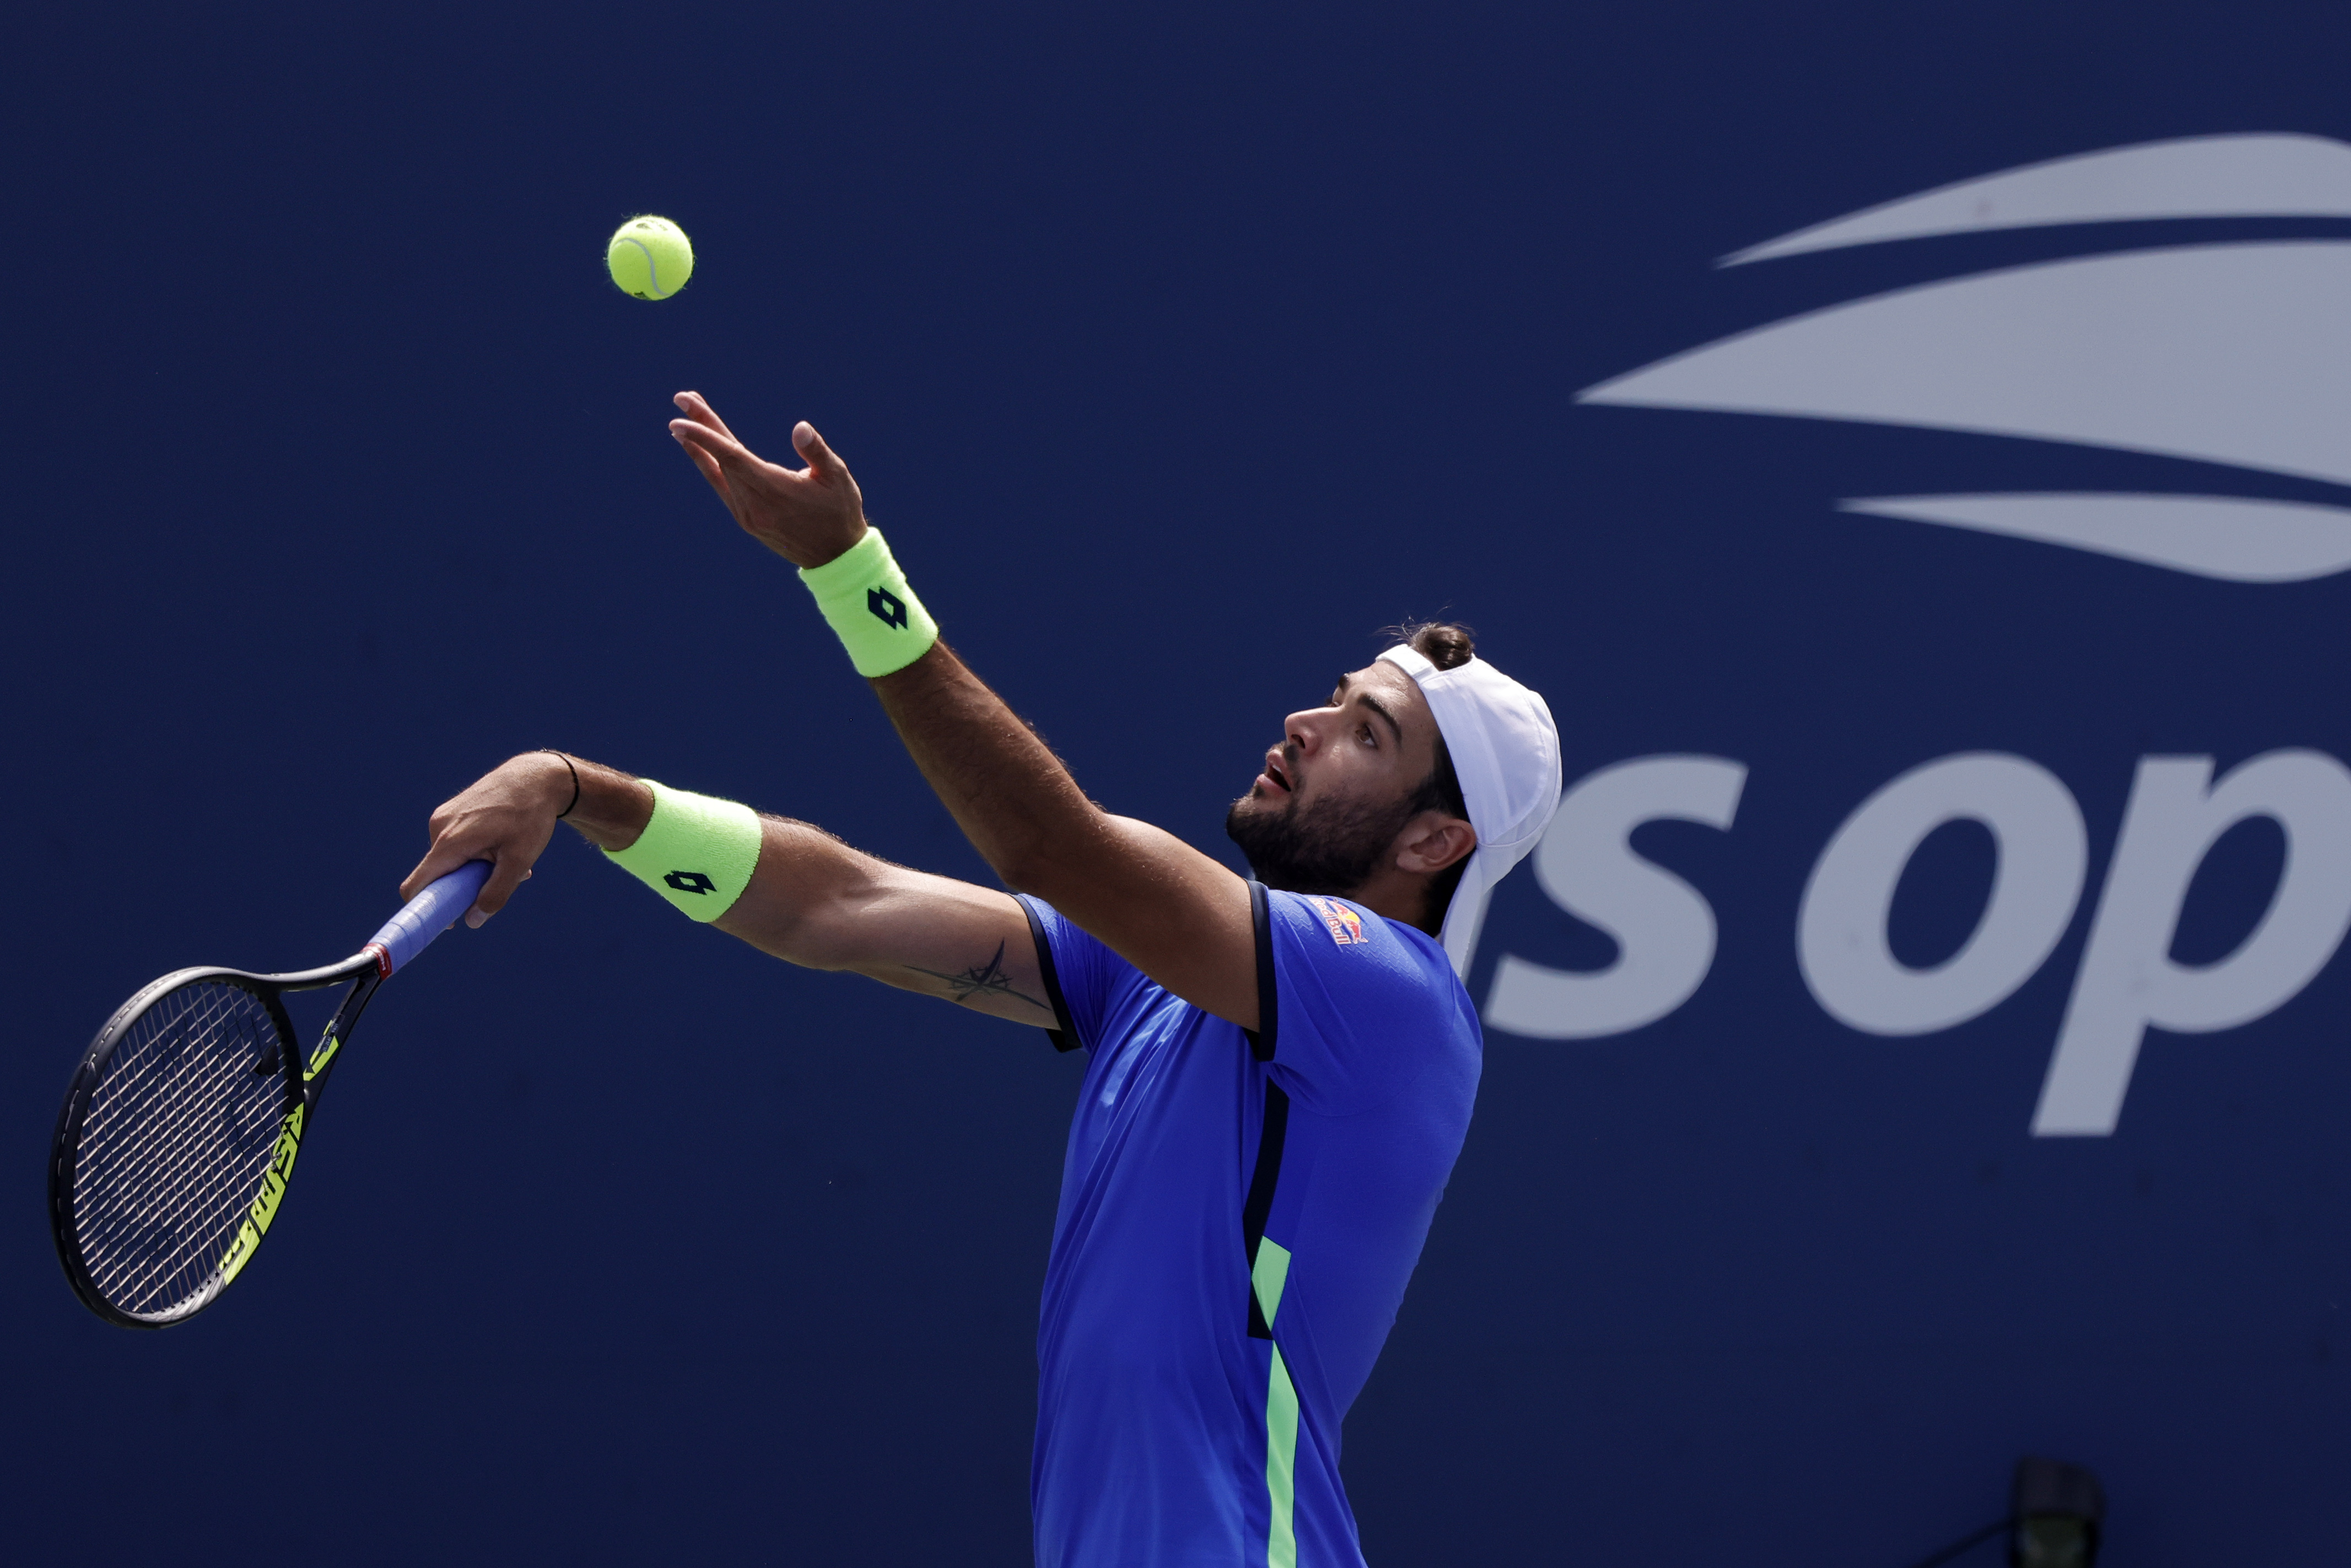 Sep 4, 2021; Flushing, NY, USA; Matteo Berrettini of Italy serves against Ilya Ivashka of Belarus (not pictured) on day six of the 2021 U.S. Open tennis tournament at USTA Billie Jean King National Tennis Center. Mandatory Credit: Geoff Burke-USA TODAY Sports